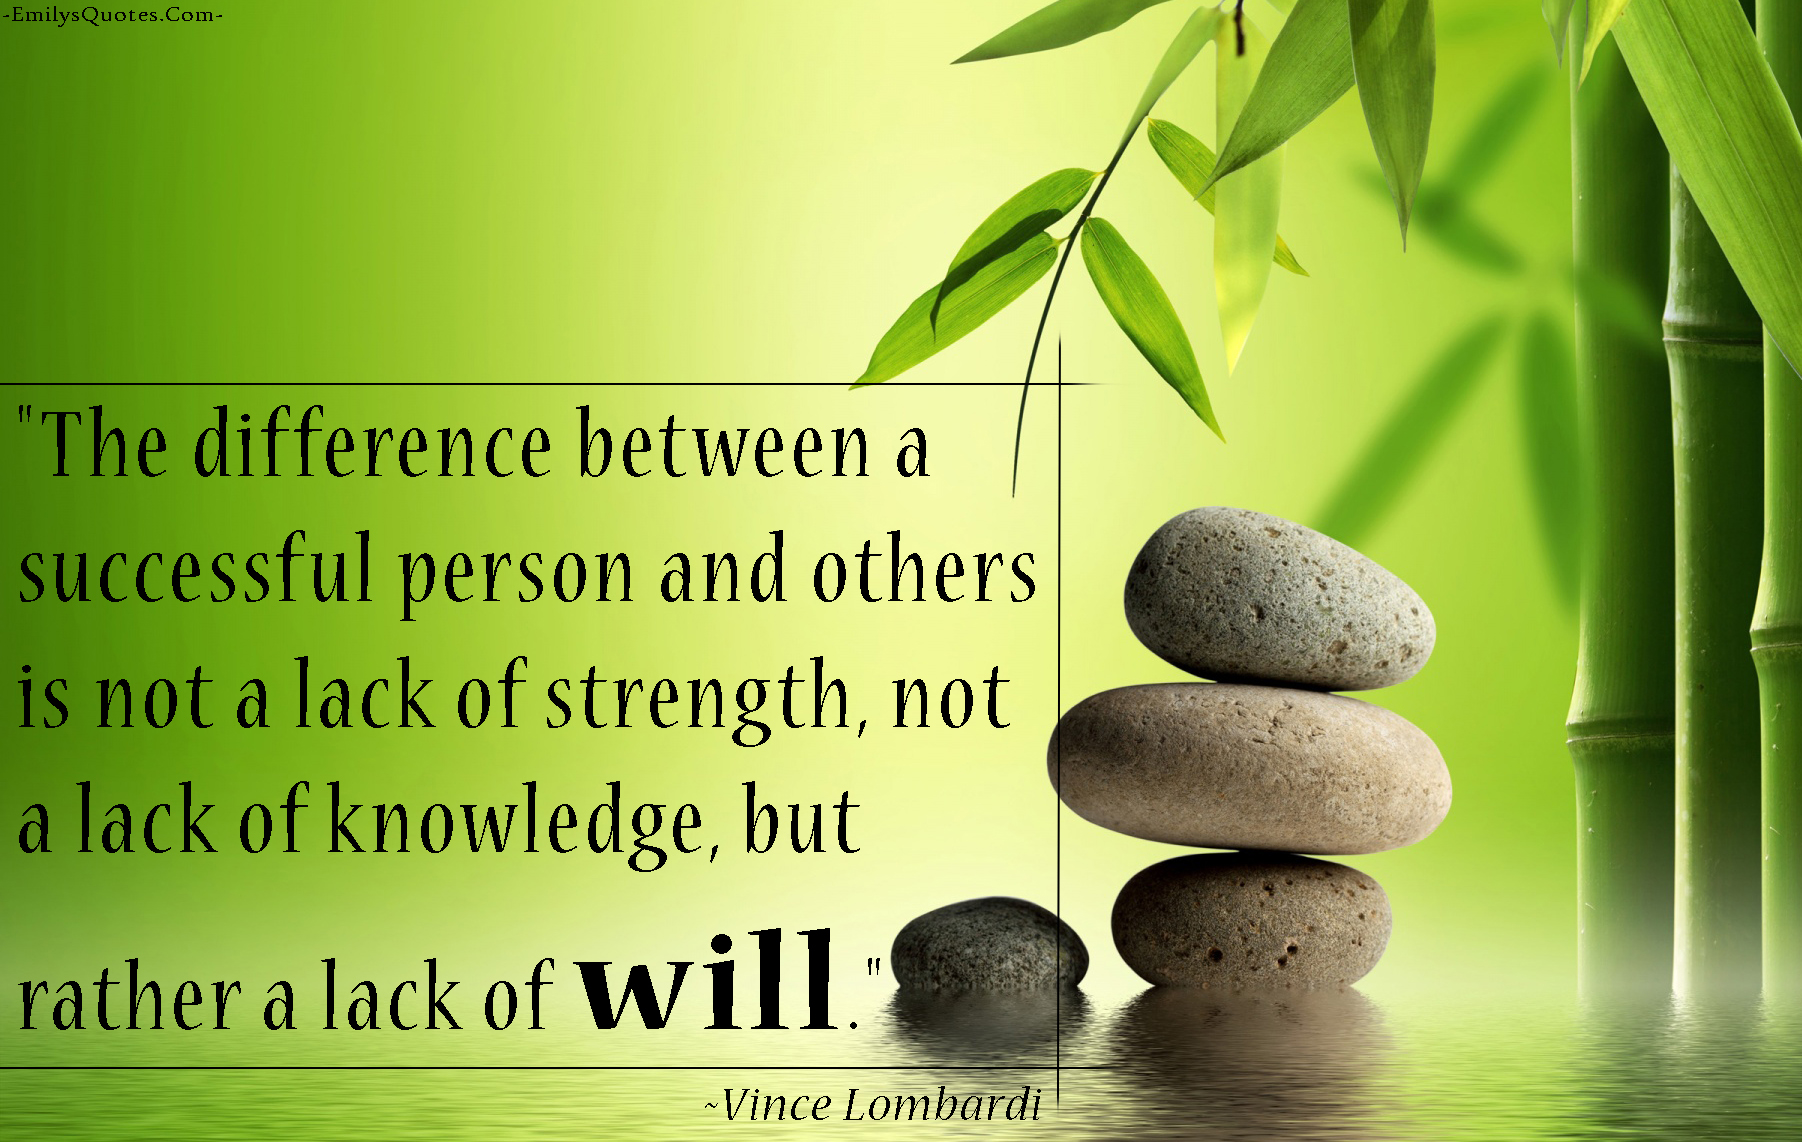 EmilysQuotes.Com - difference, successful, lack, strength, knowledge, will, reason, Vince Lombardi, motivational